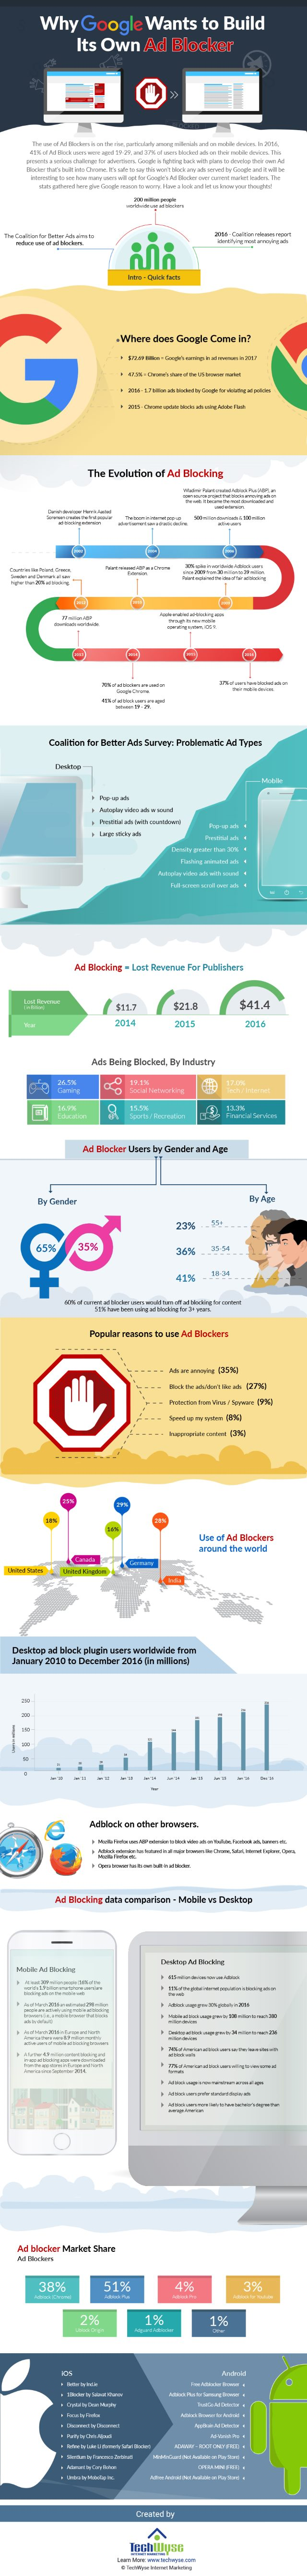 TechWyse ad blocking infographic